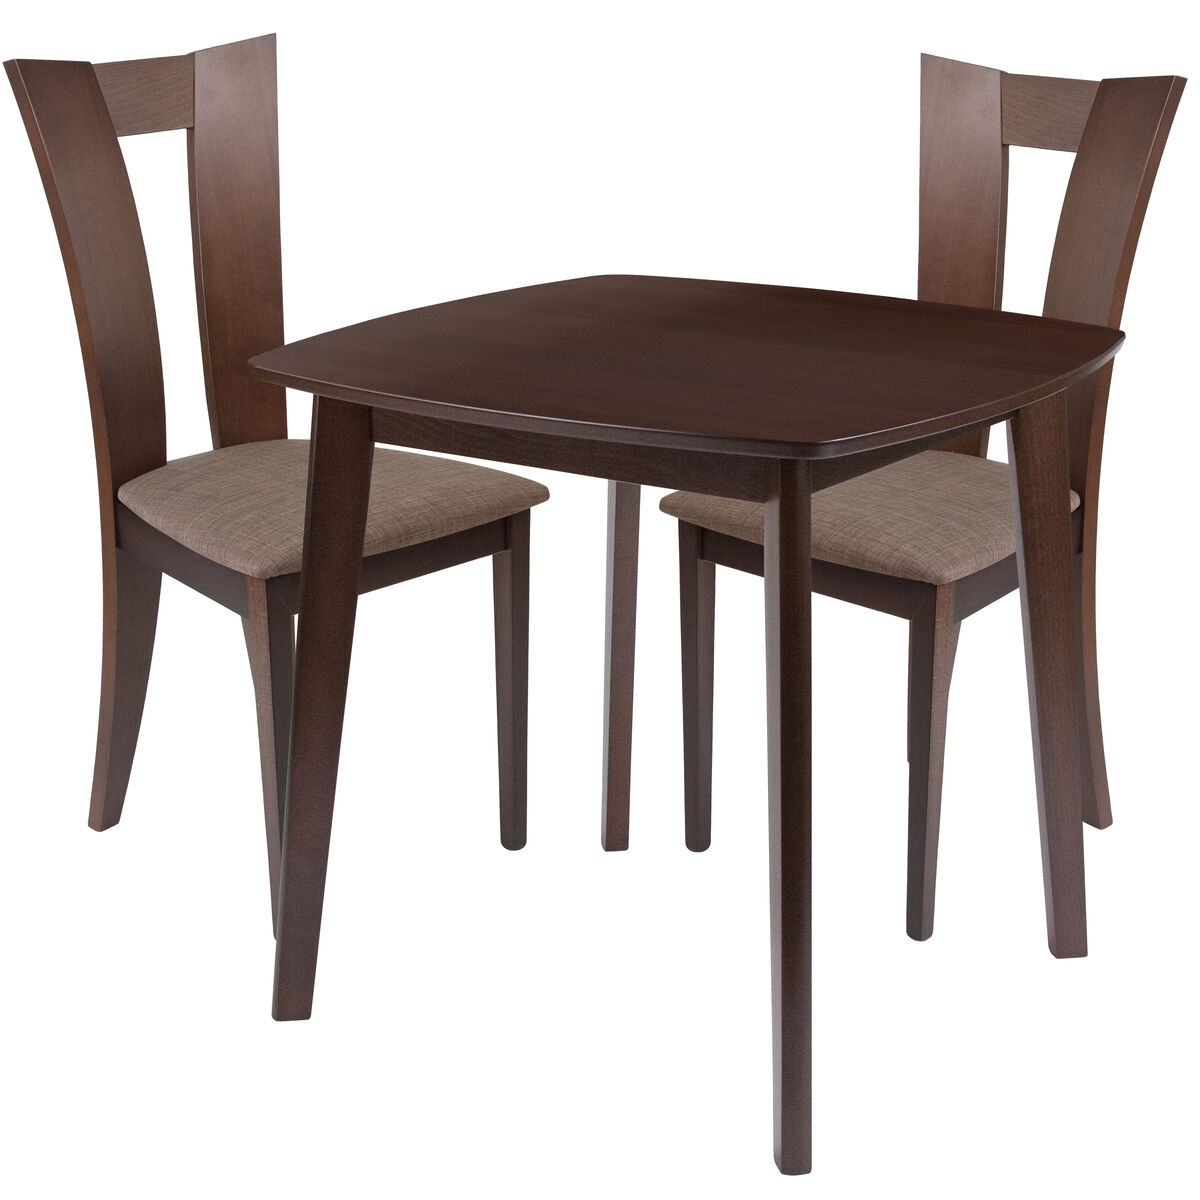 Our Exeter 3 Piece Espresso Wood Dining Table Set With Slotted Back Chairs